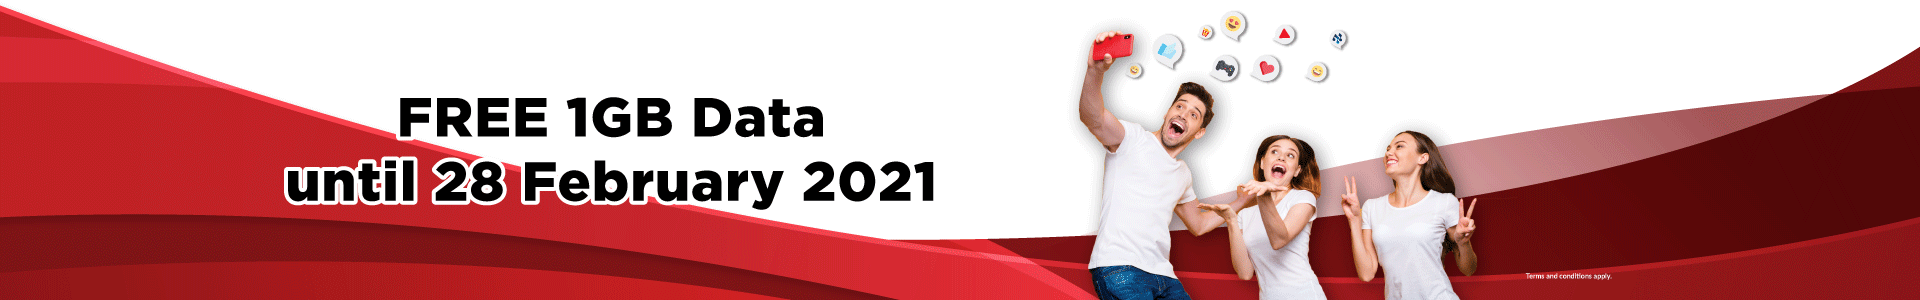 We're giving you free 1GB data from 10 June until 28 February 2021 to keep you connected.